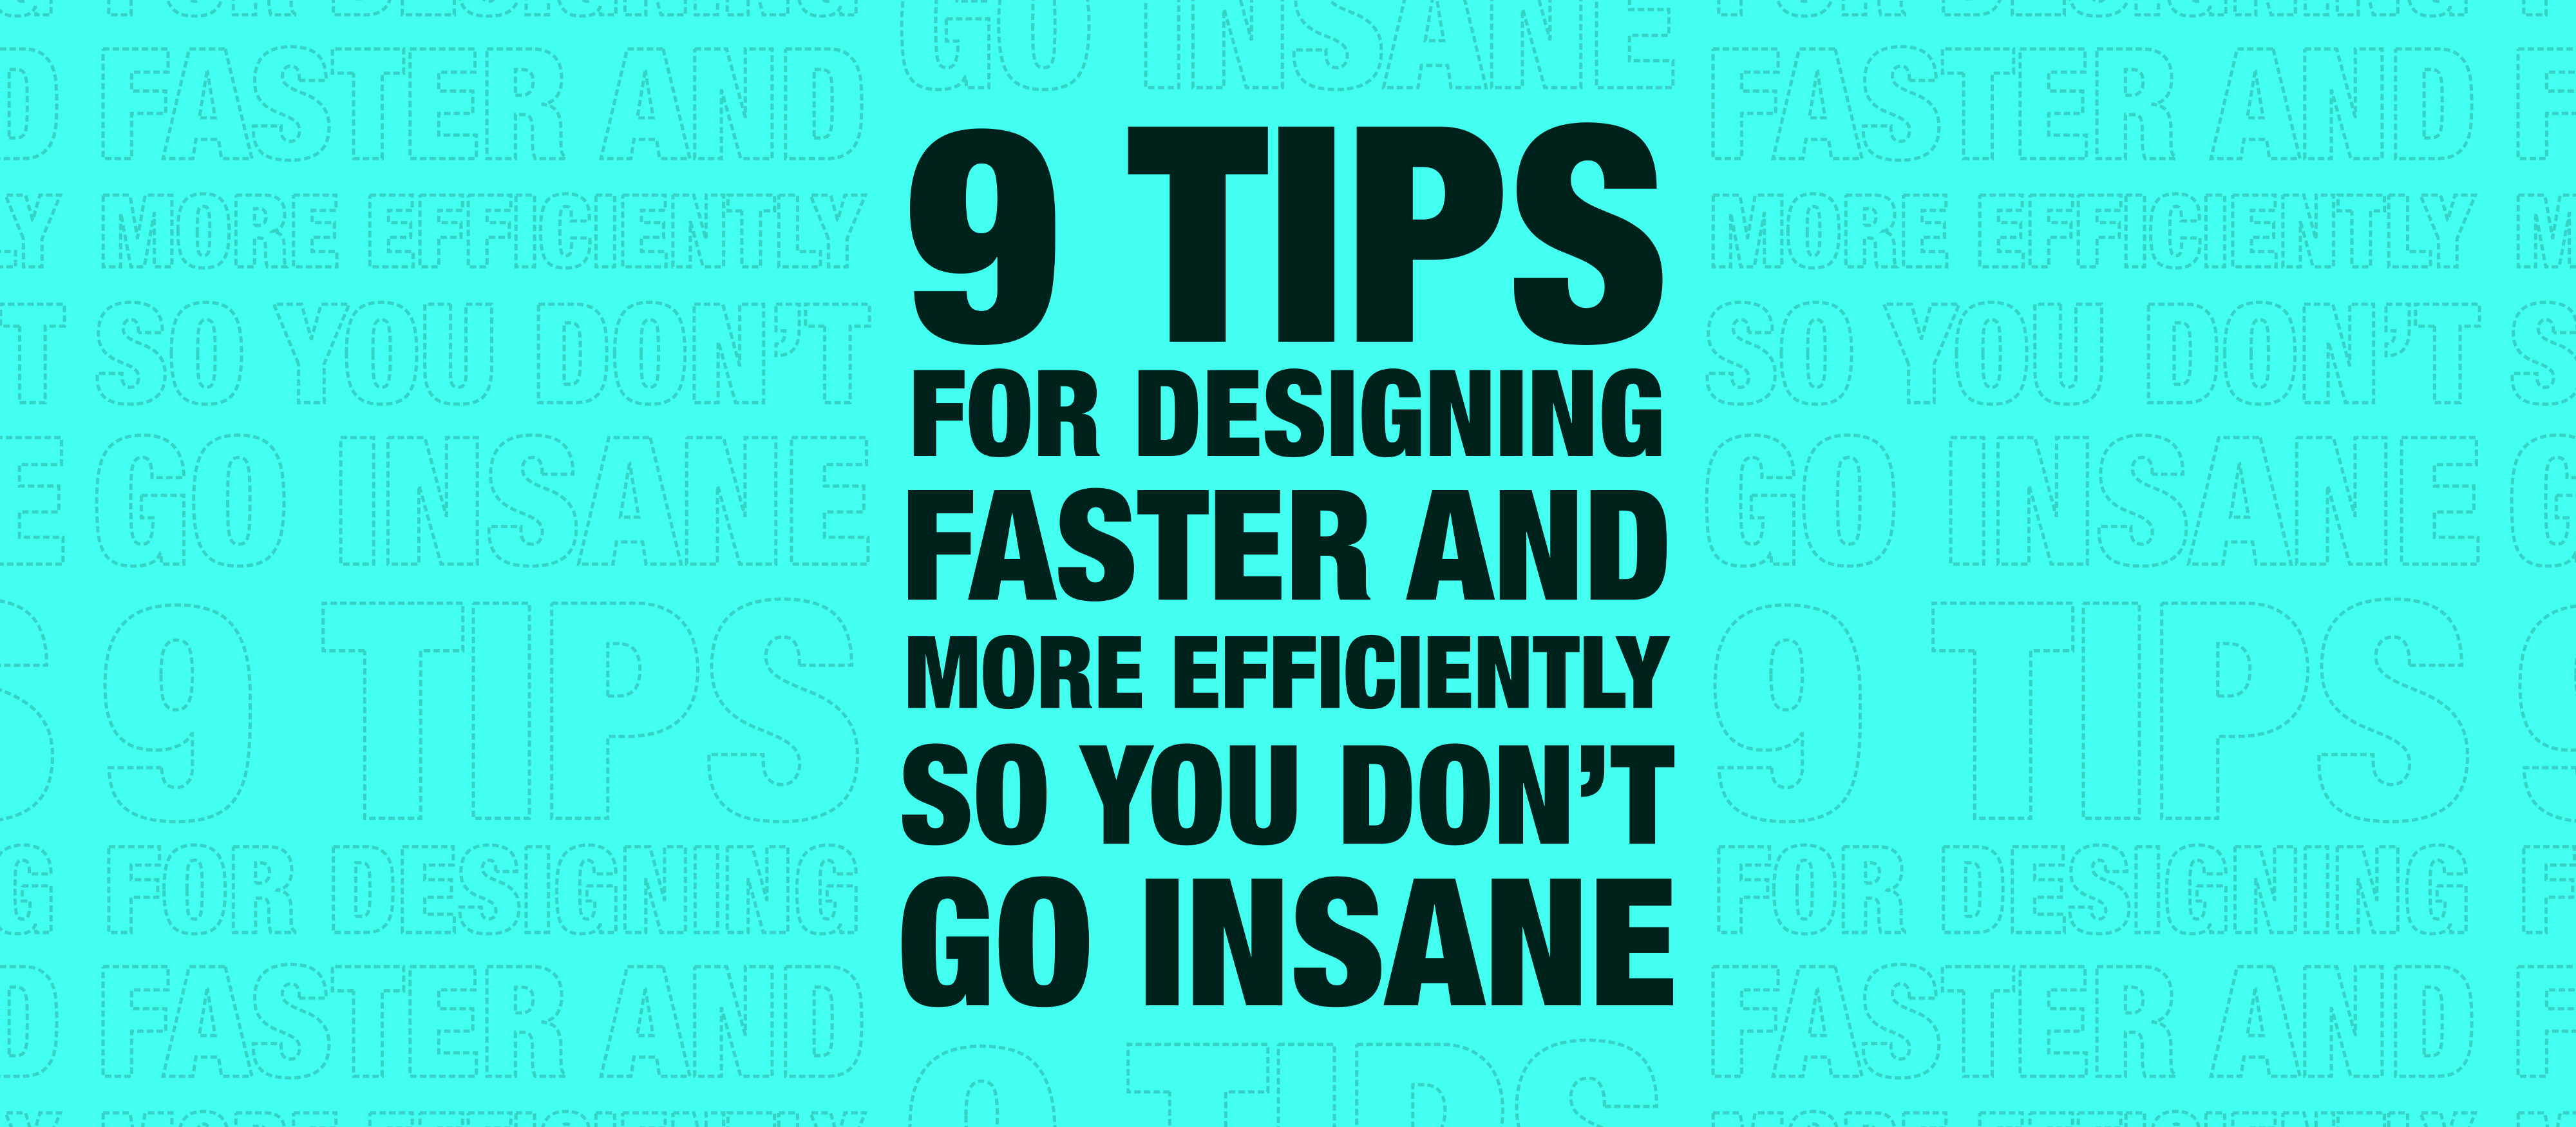 9 Tips For Designing Faster and More Efficiently So You Don